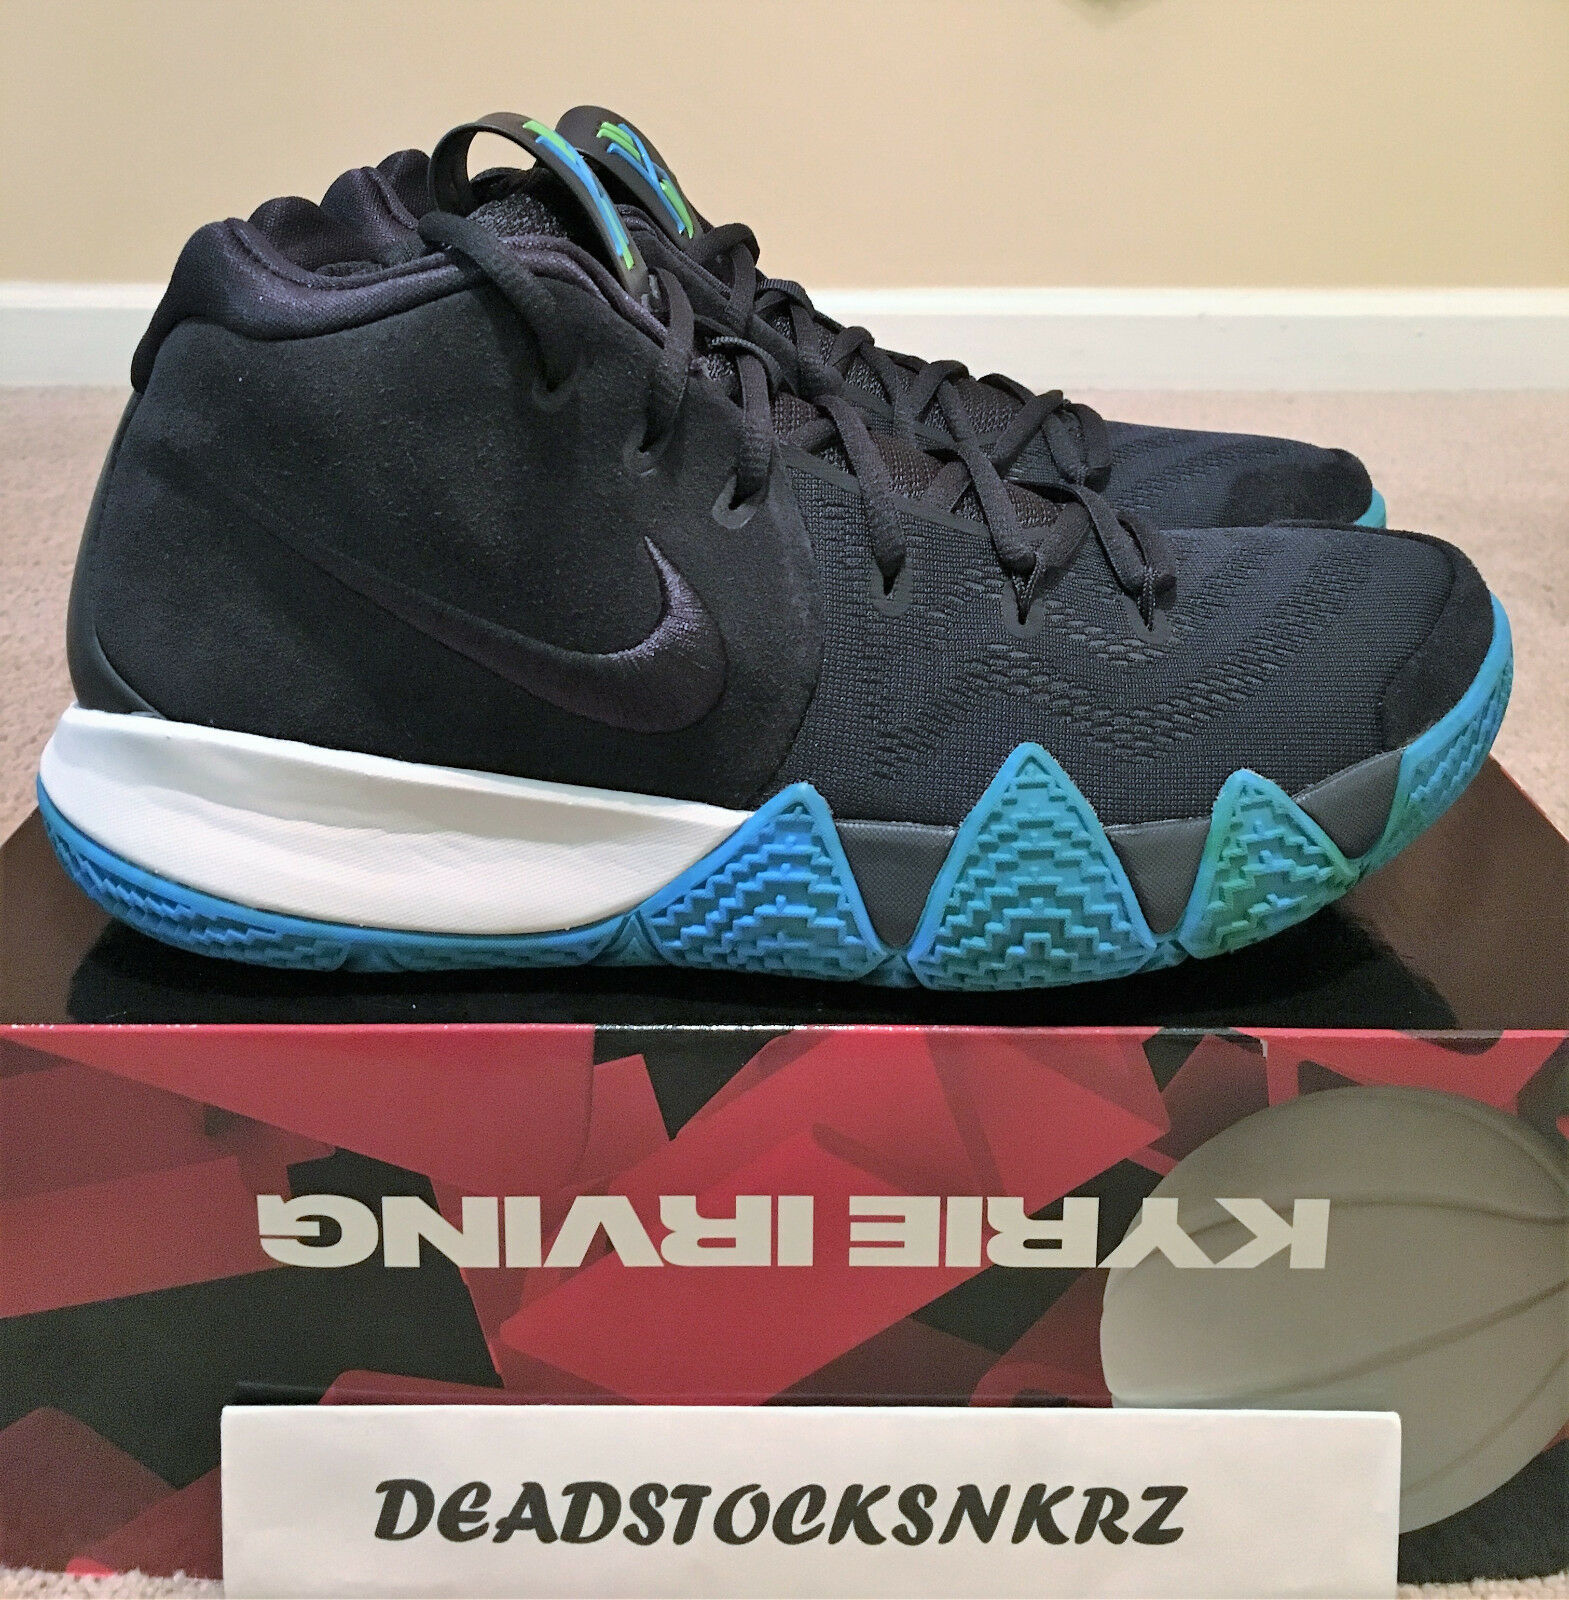 Nike Kyrie 4 Dark Obsidian 943806 401 Men's Sizes 9.5-10